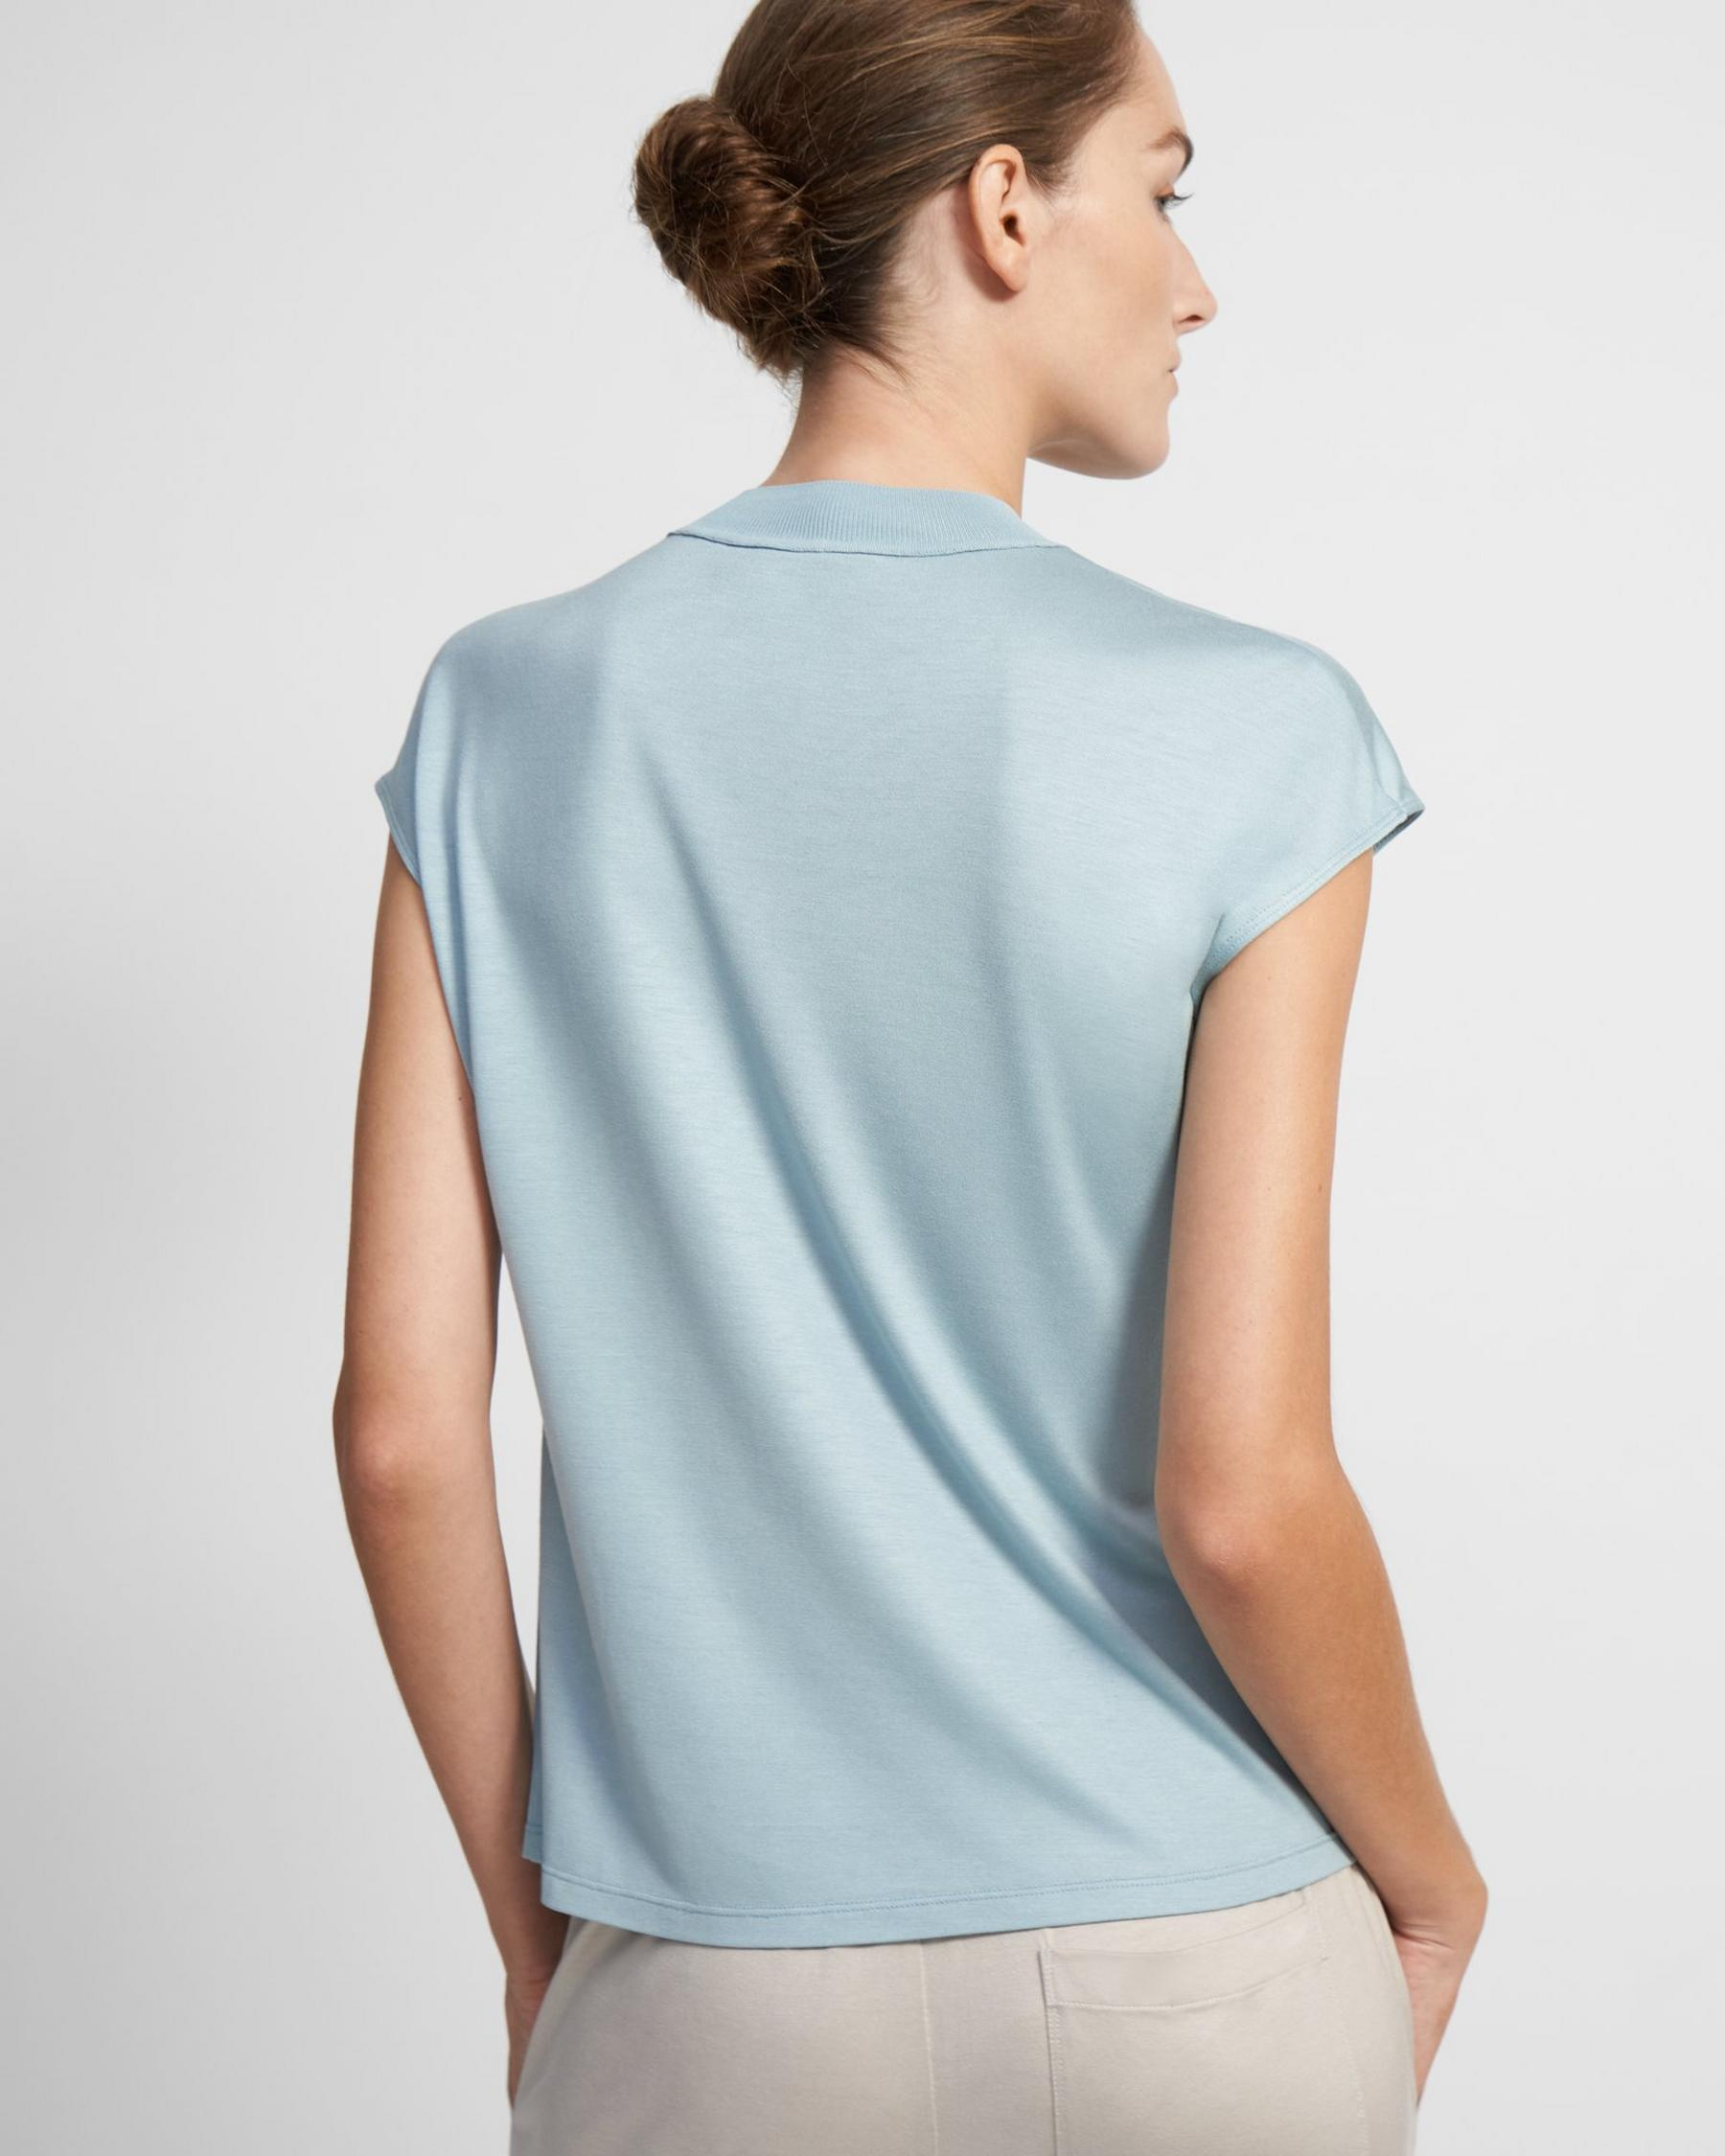 Ribbed Neck Top in Silk Jersey 2